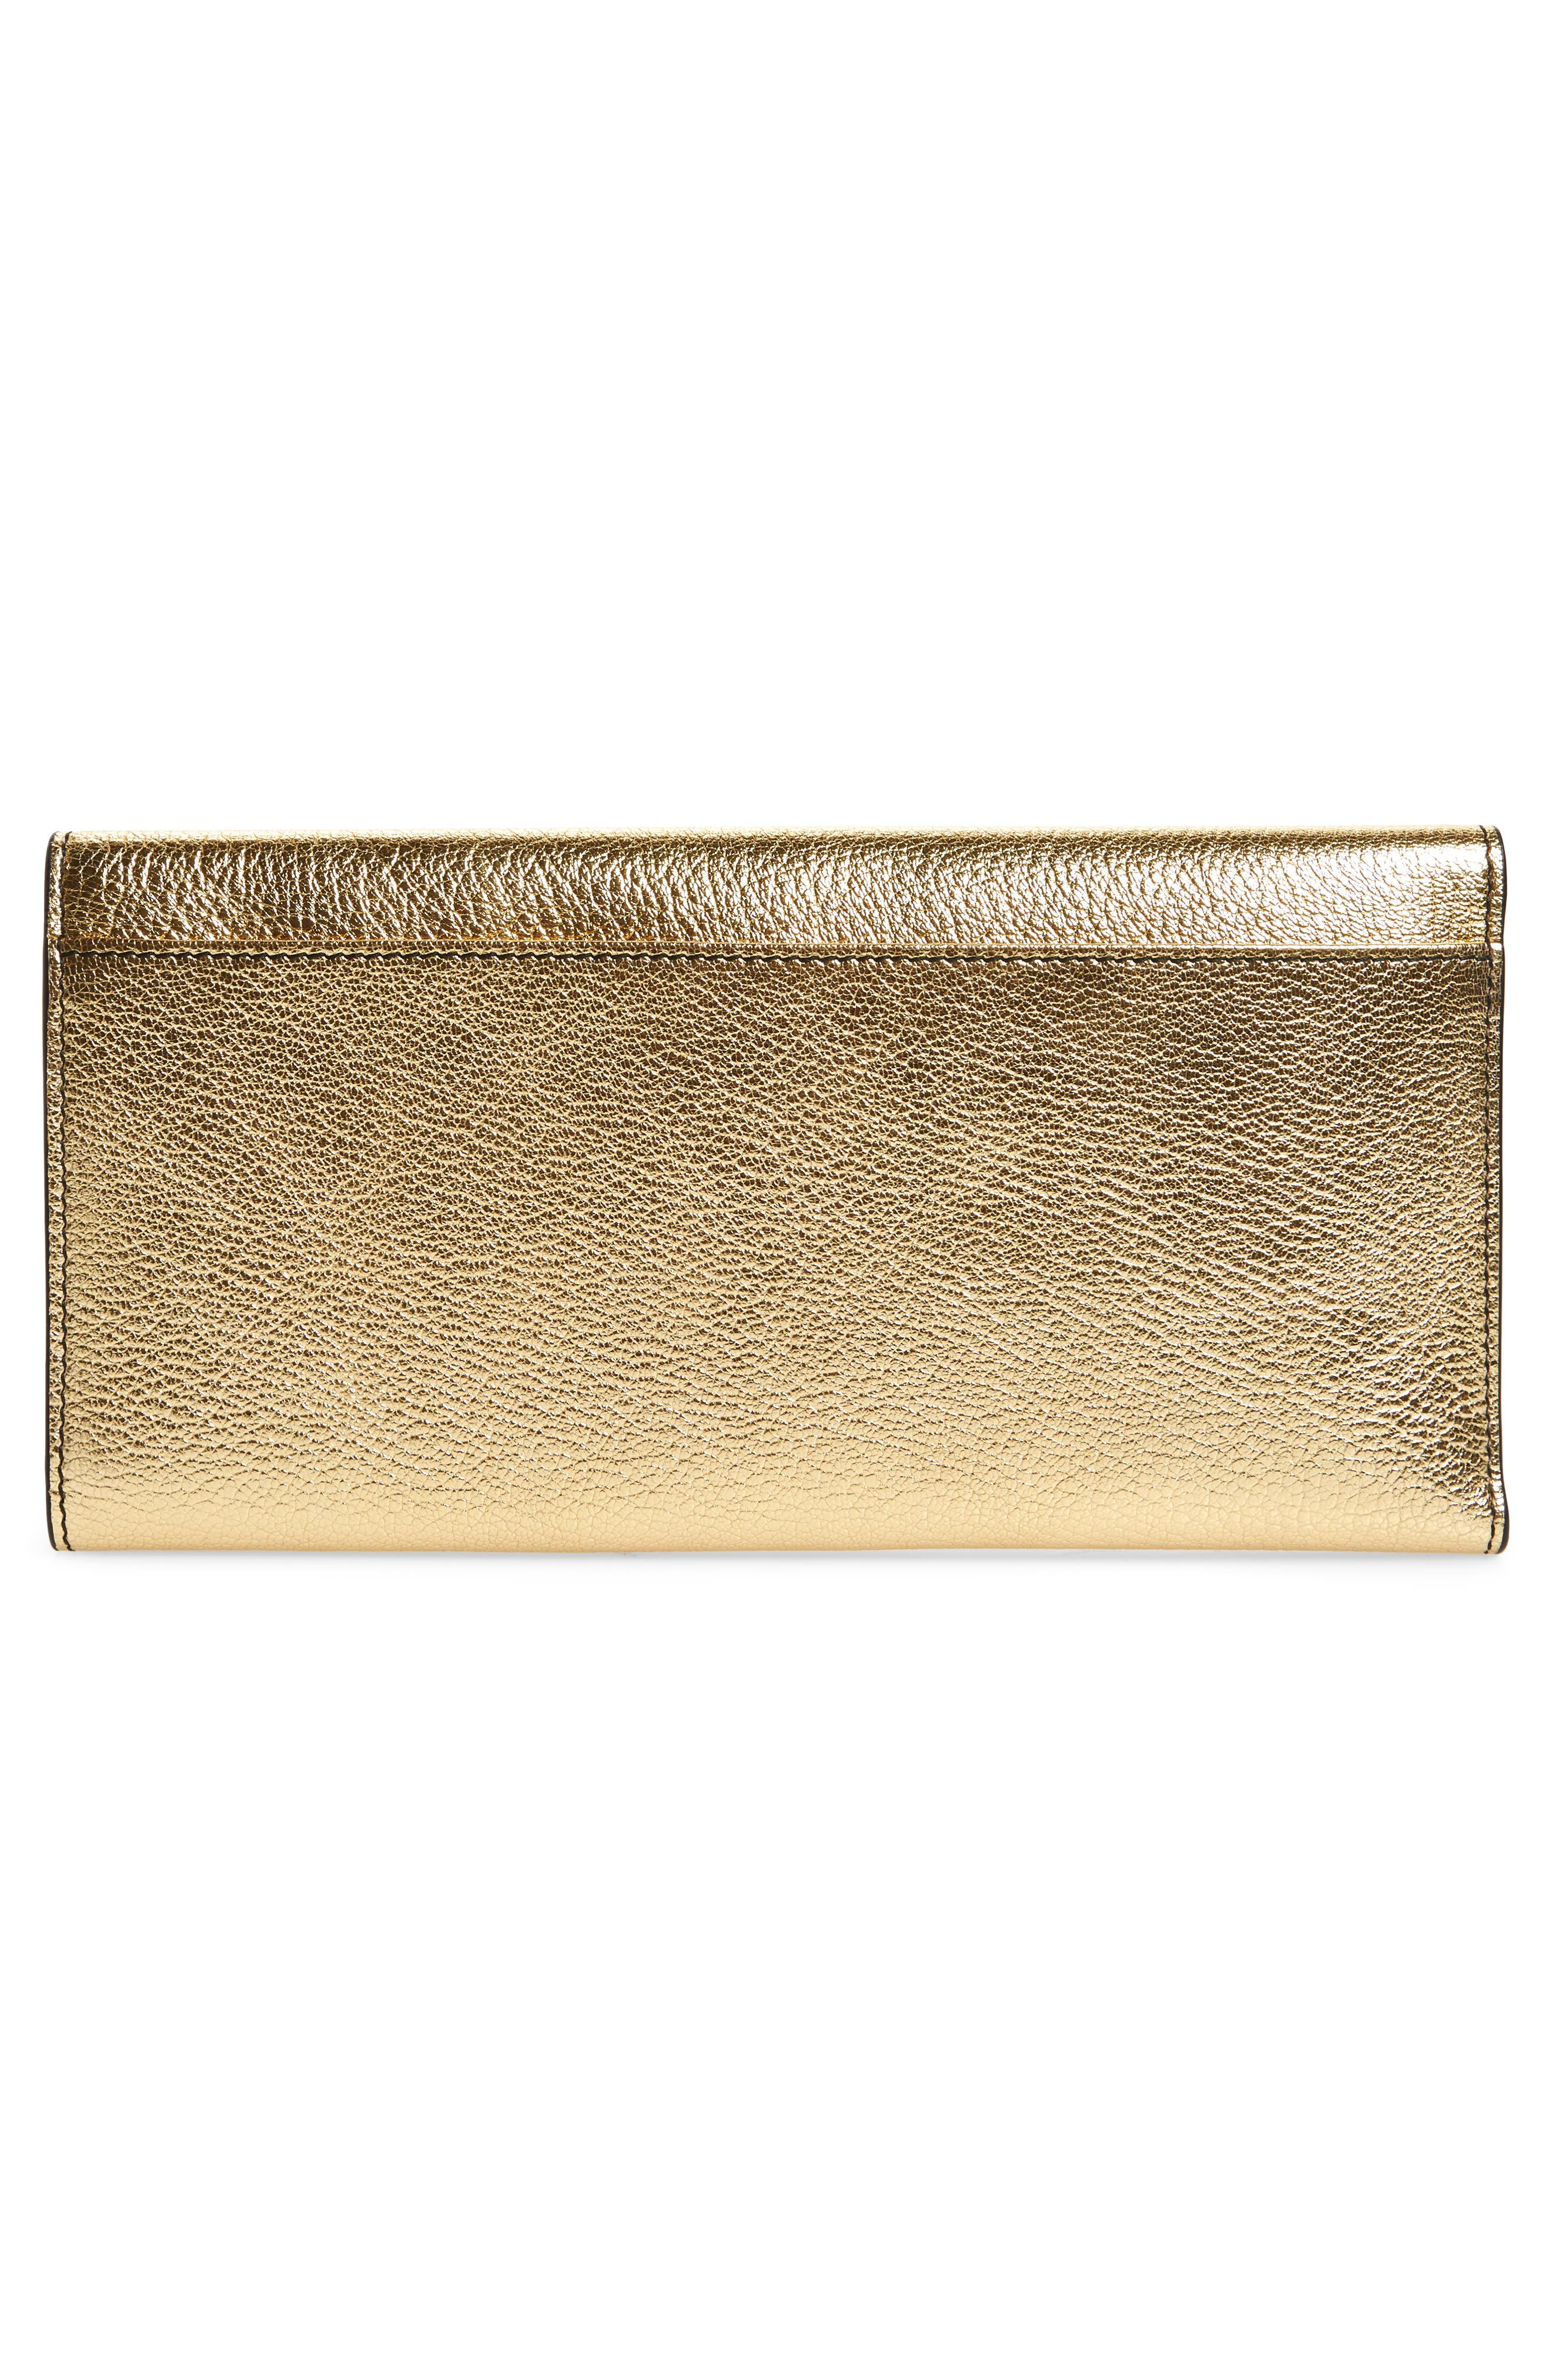 Leather Travel Wallet,                             Alternate thumbnail 4, color,                             Sahara Gold